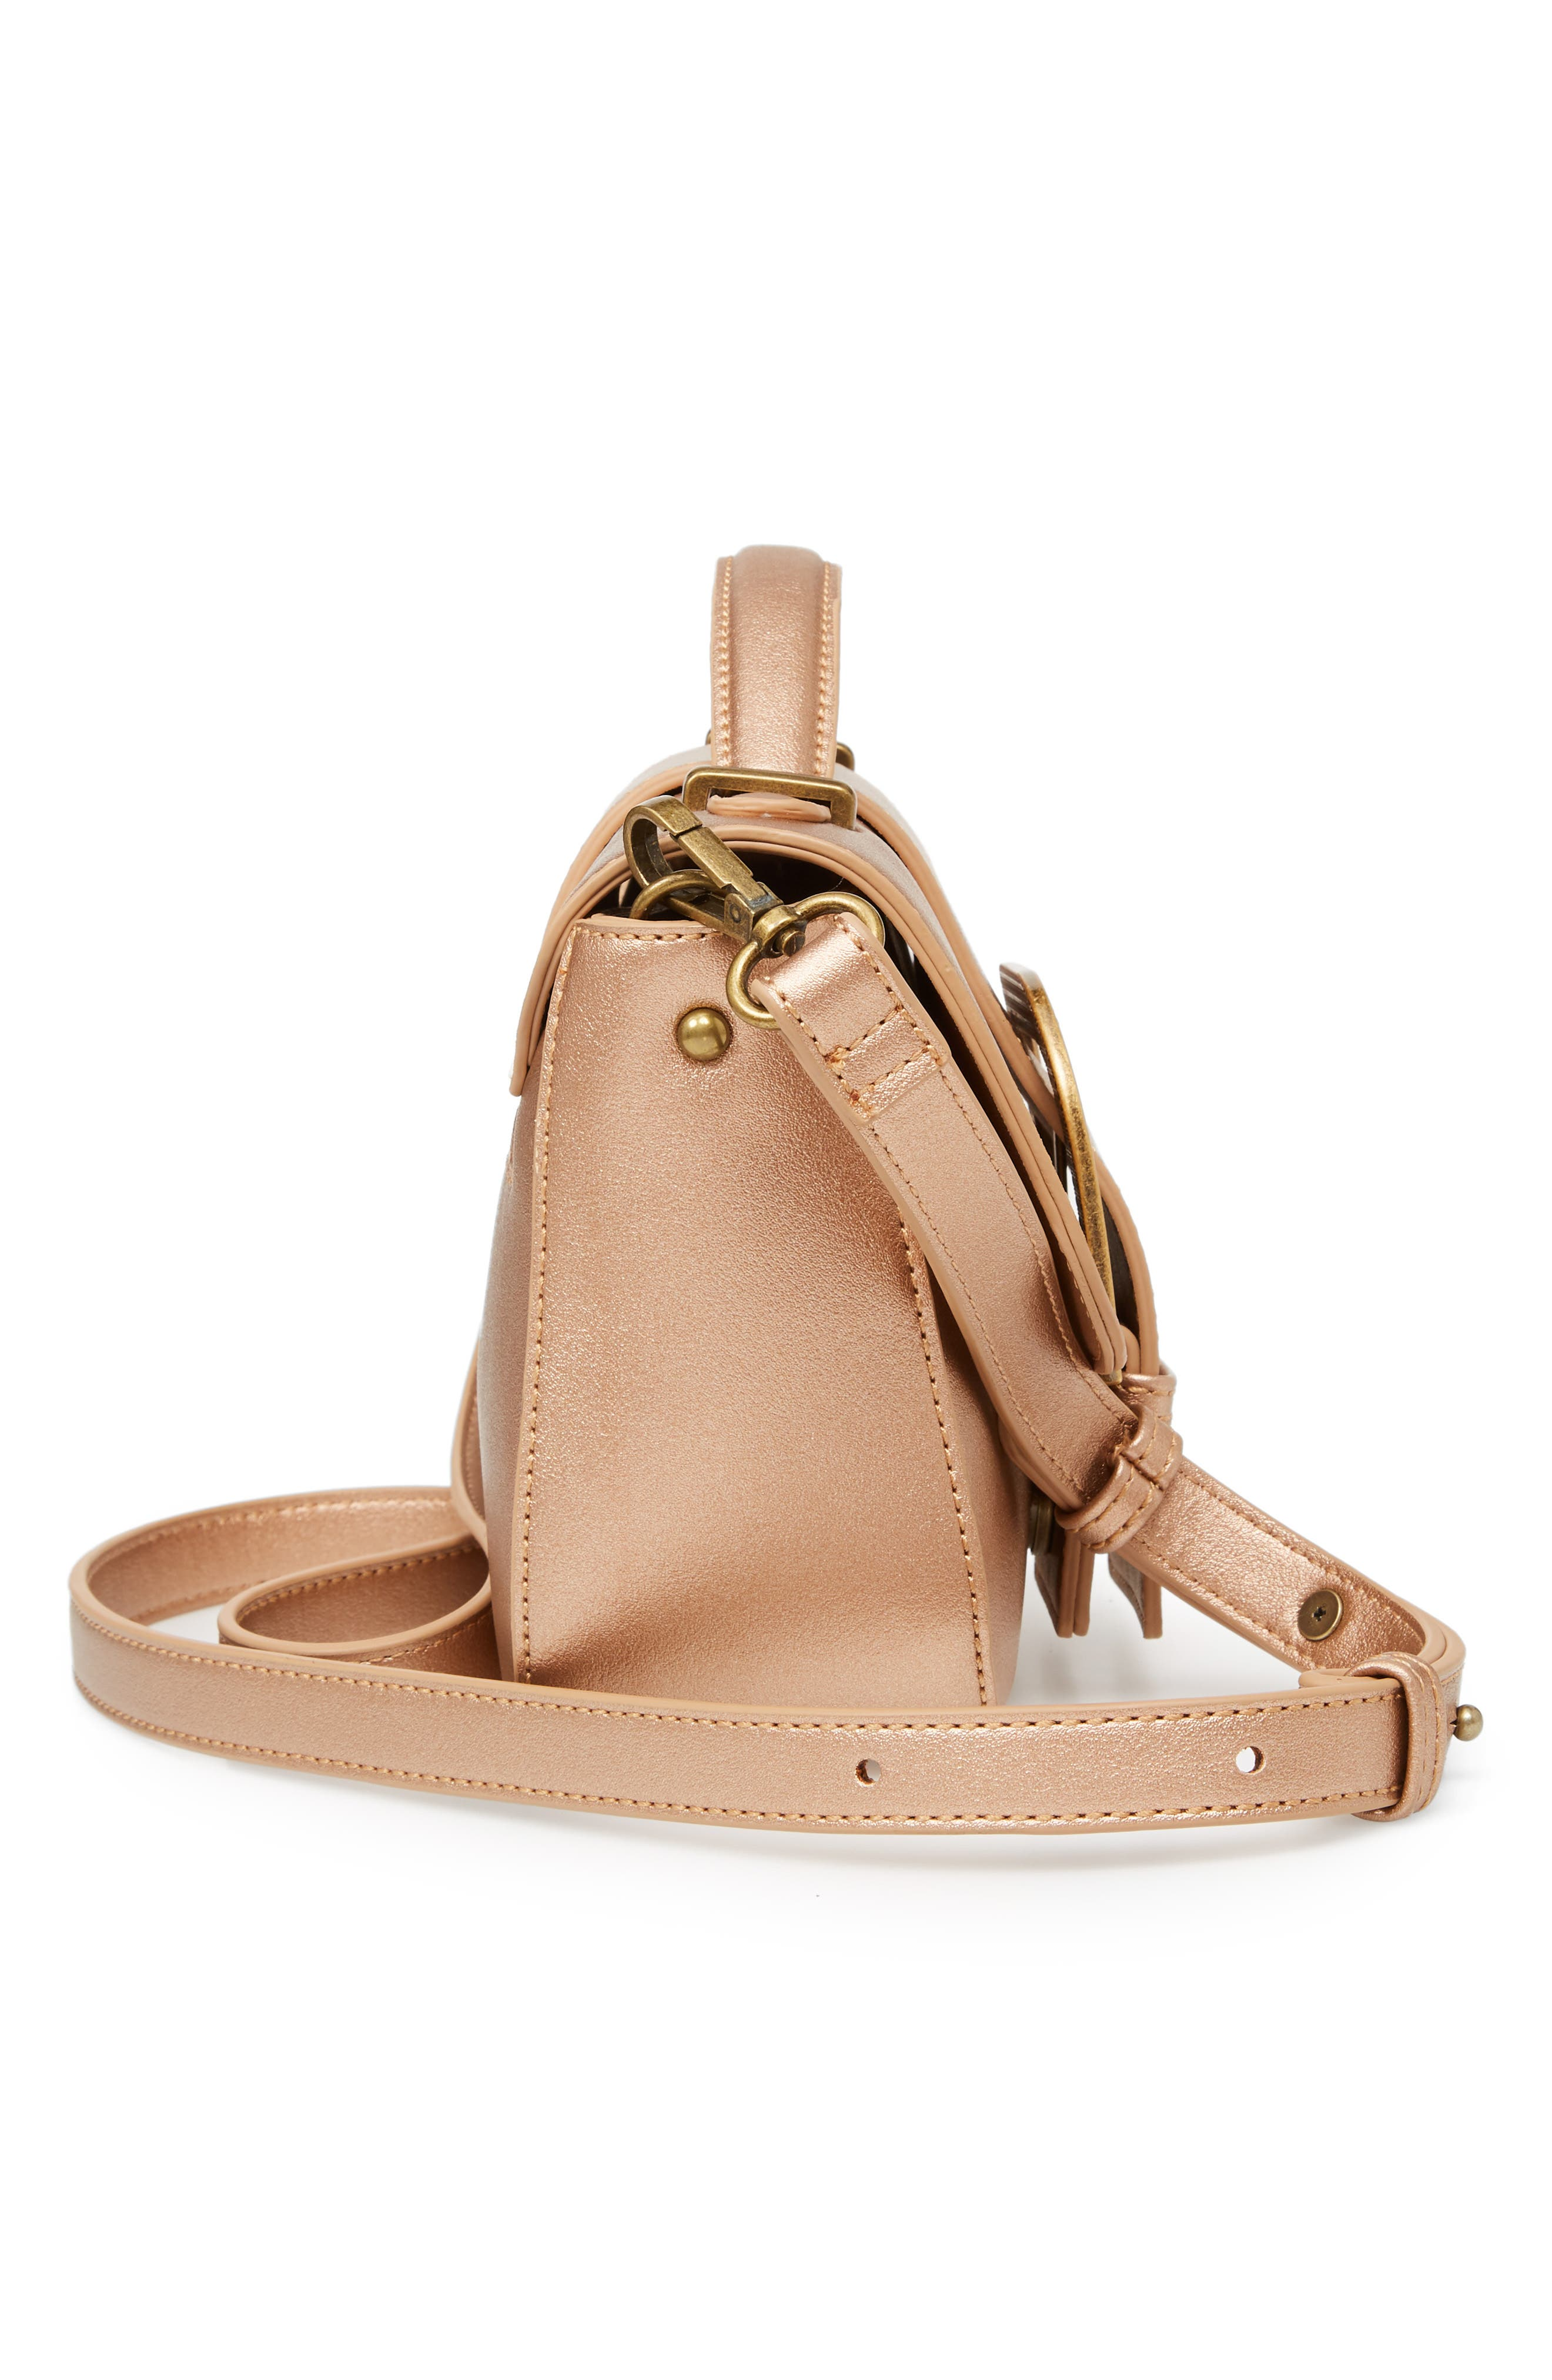 MALIBU SKYE, Oversize Buckle Top Handle Bag, Alternate thumbnail 6, color, ROSE GOLD